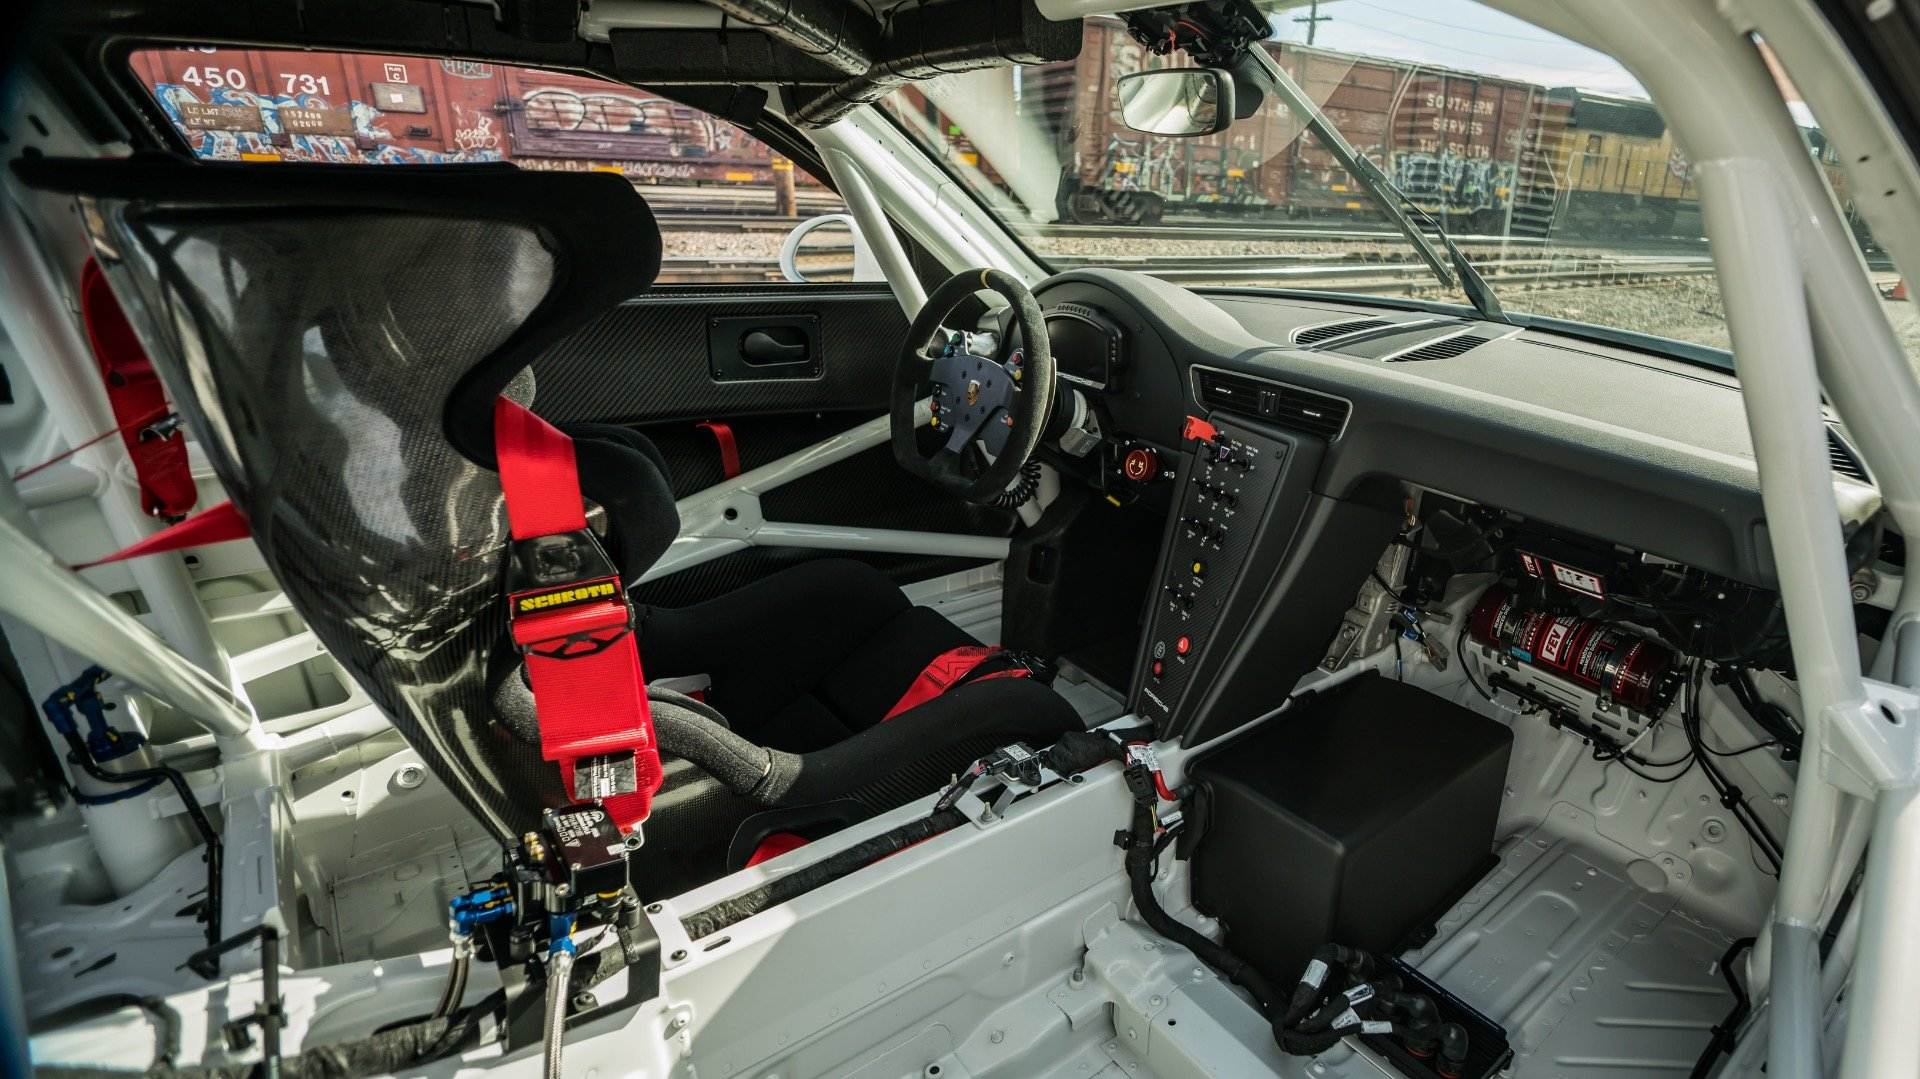 2018 Porsche GT3 Cup Car Race Car only 10 hours Spares $265k For Sale (picture 4 of 6)